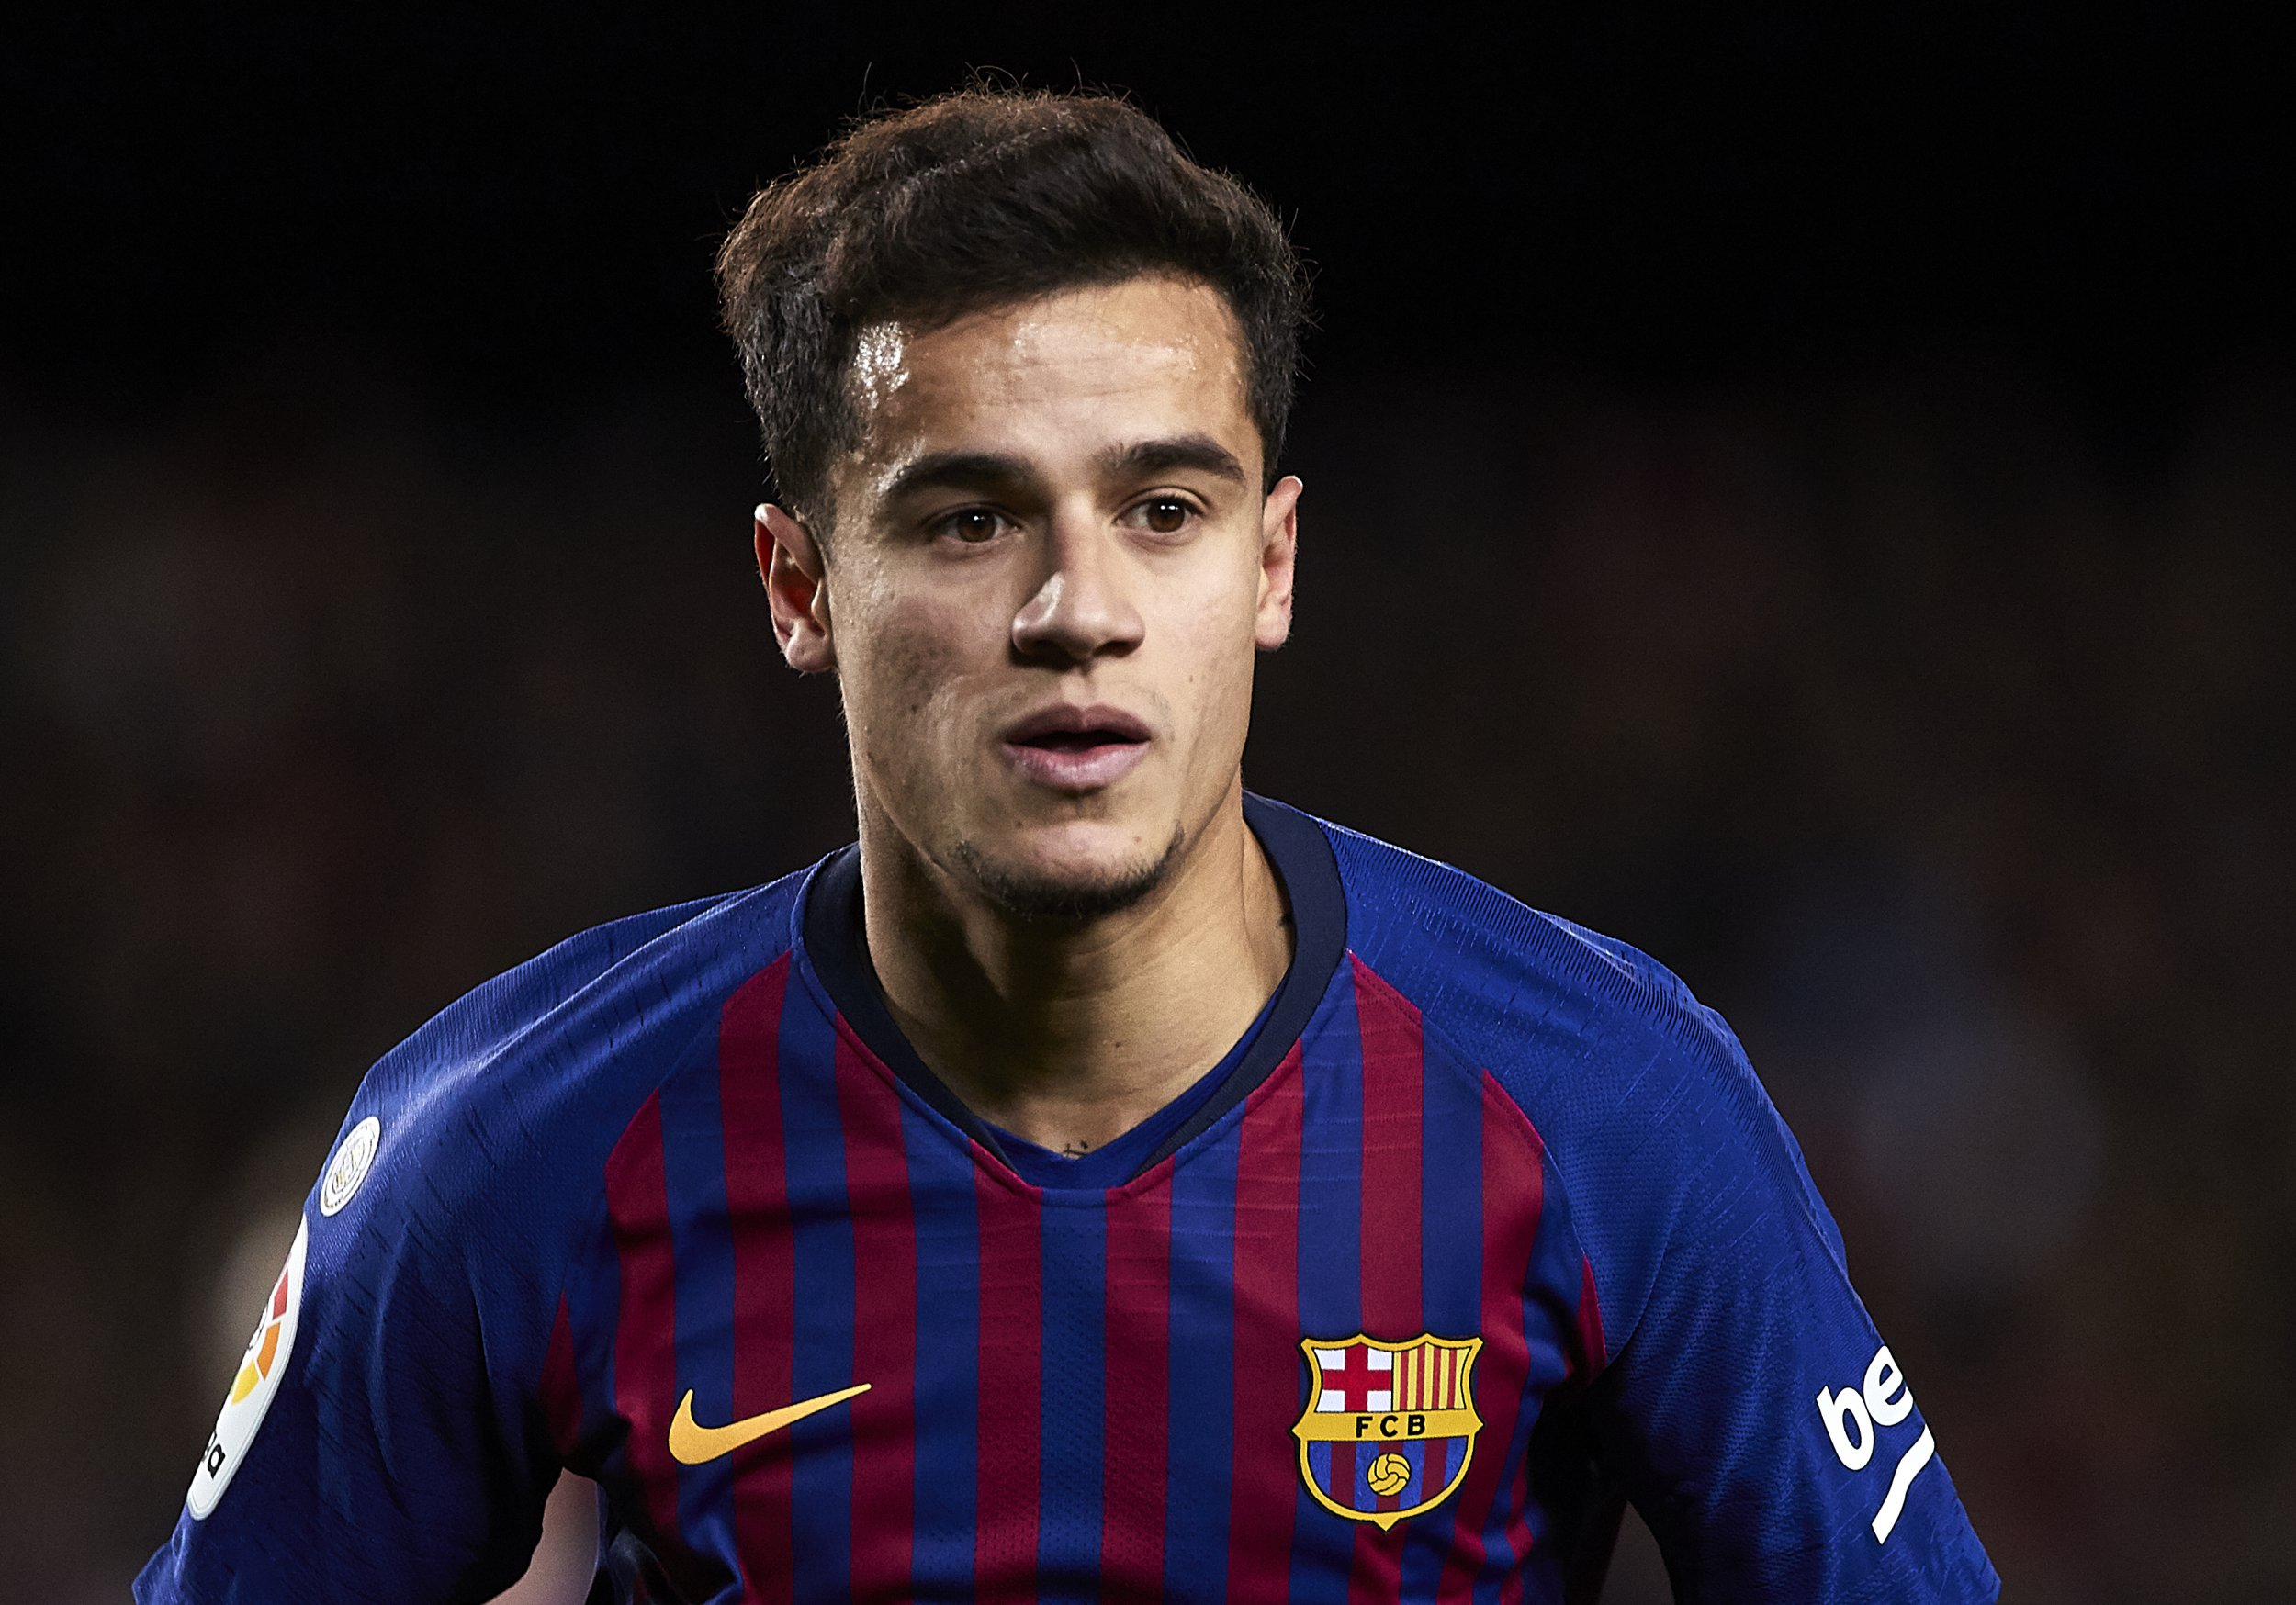 Philippe Coutinho tells Brazil teammates he is considering leaving Barcelona